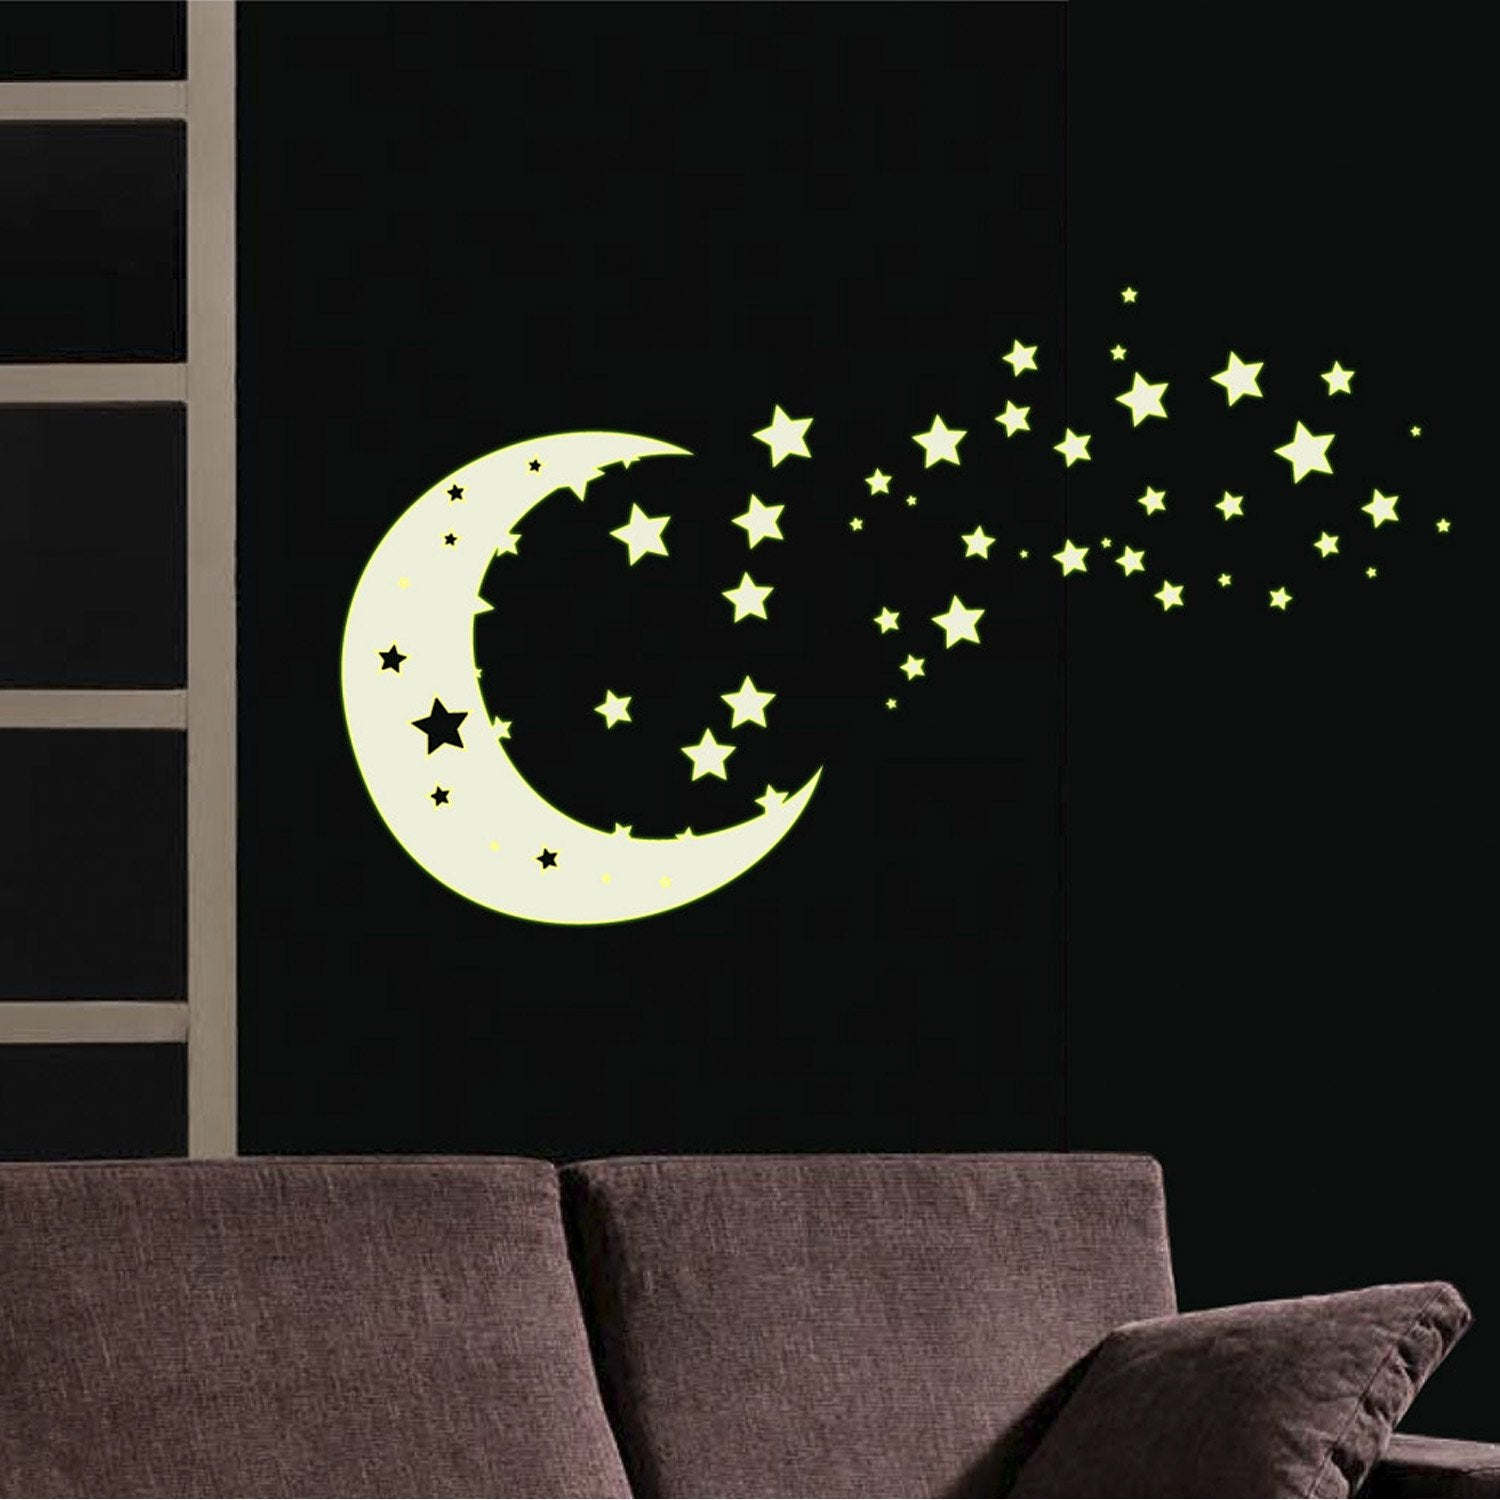 Sticker clair de lune 50 cm x 70 cm leroy merlin - Leroy merlin stickers muraux ...